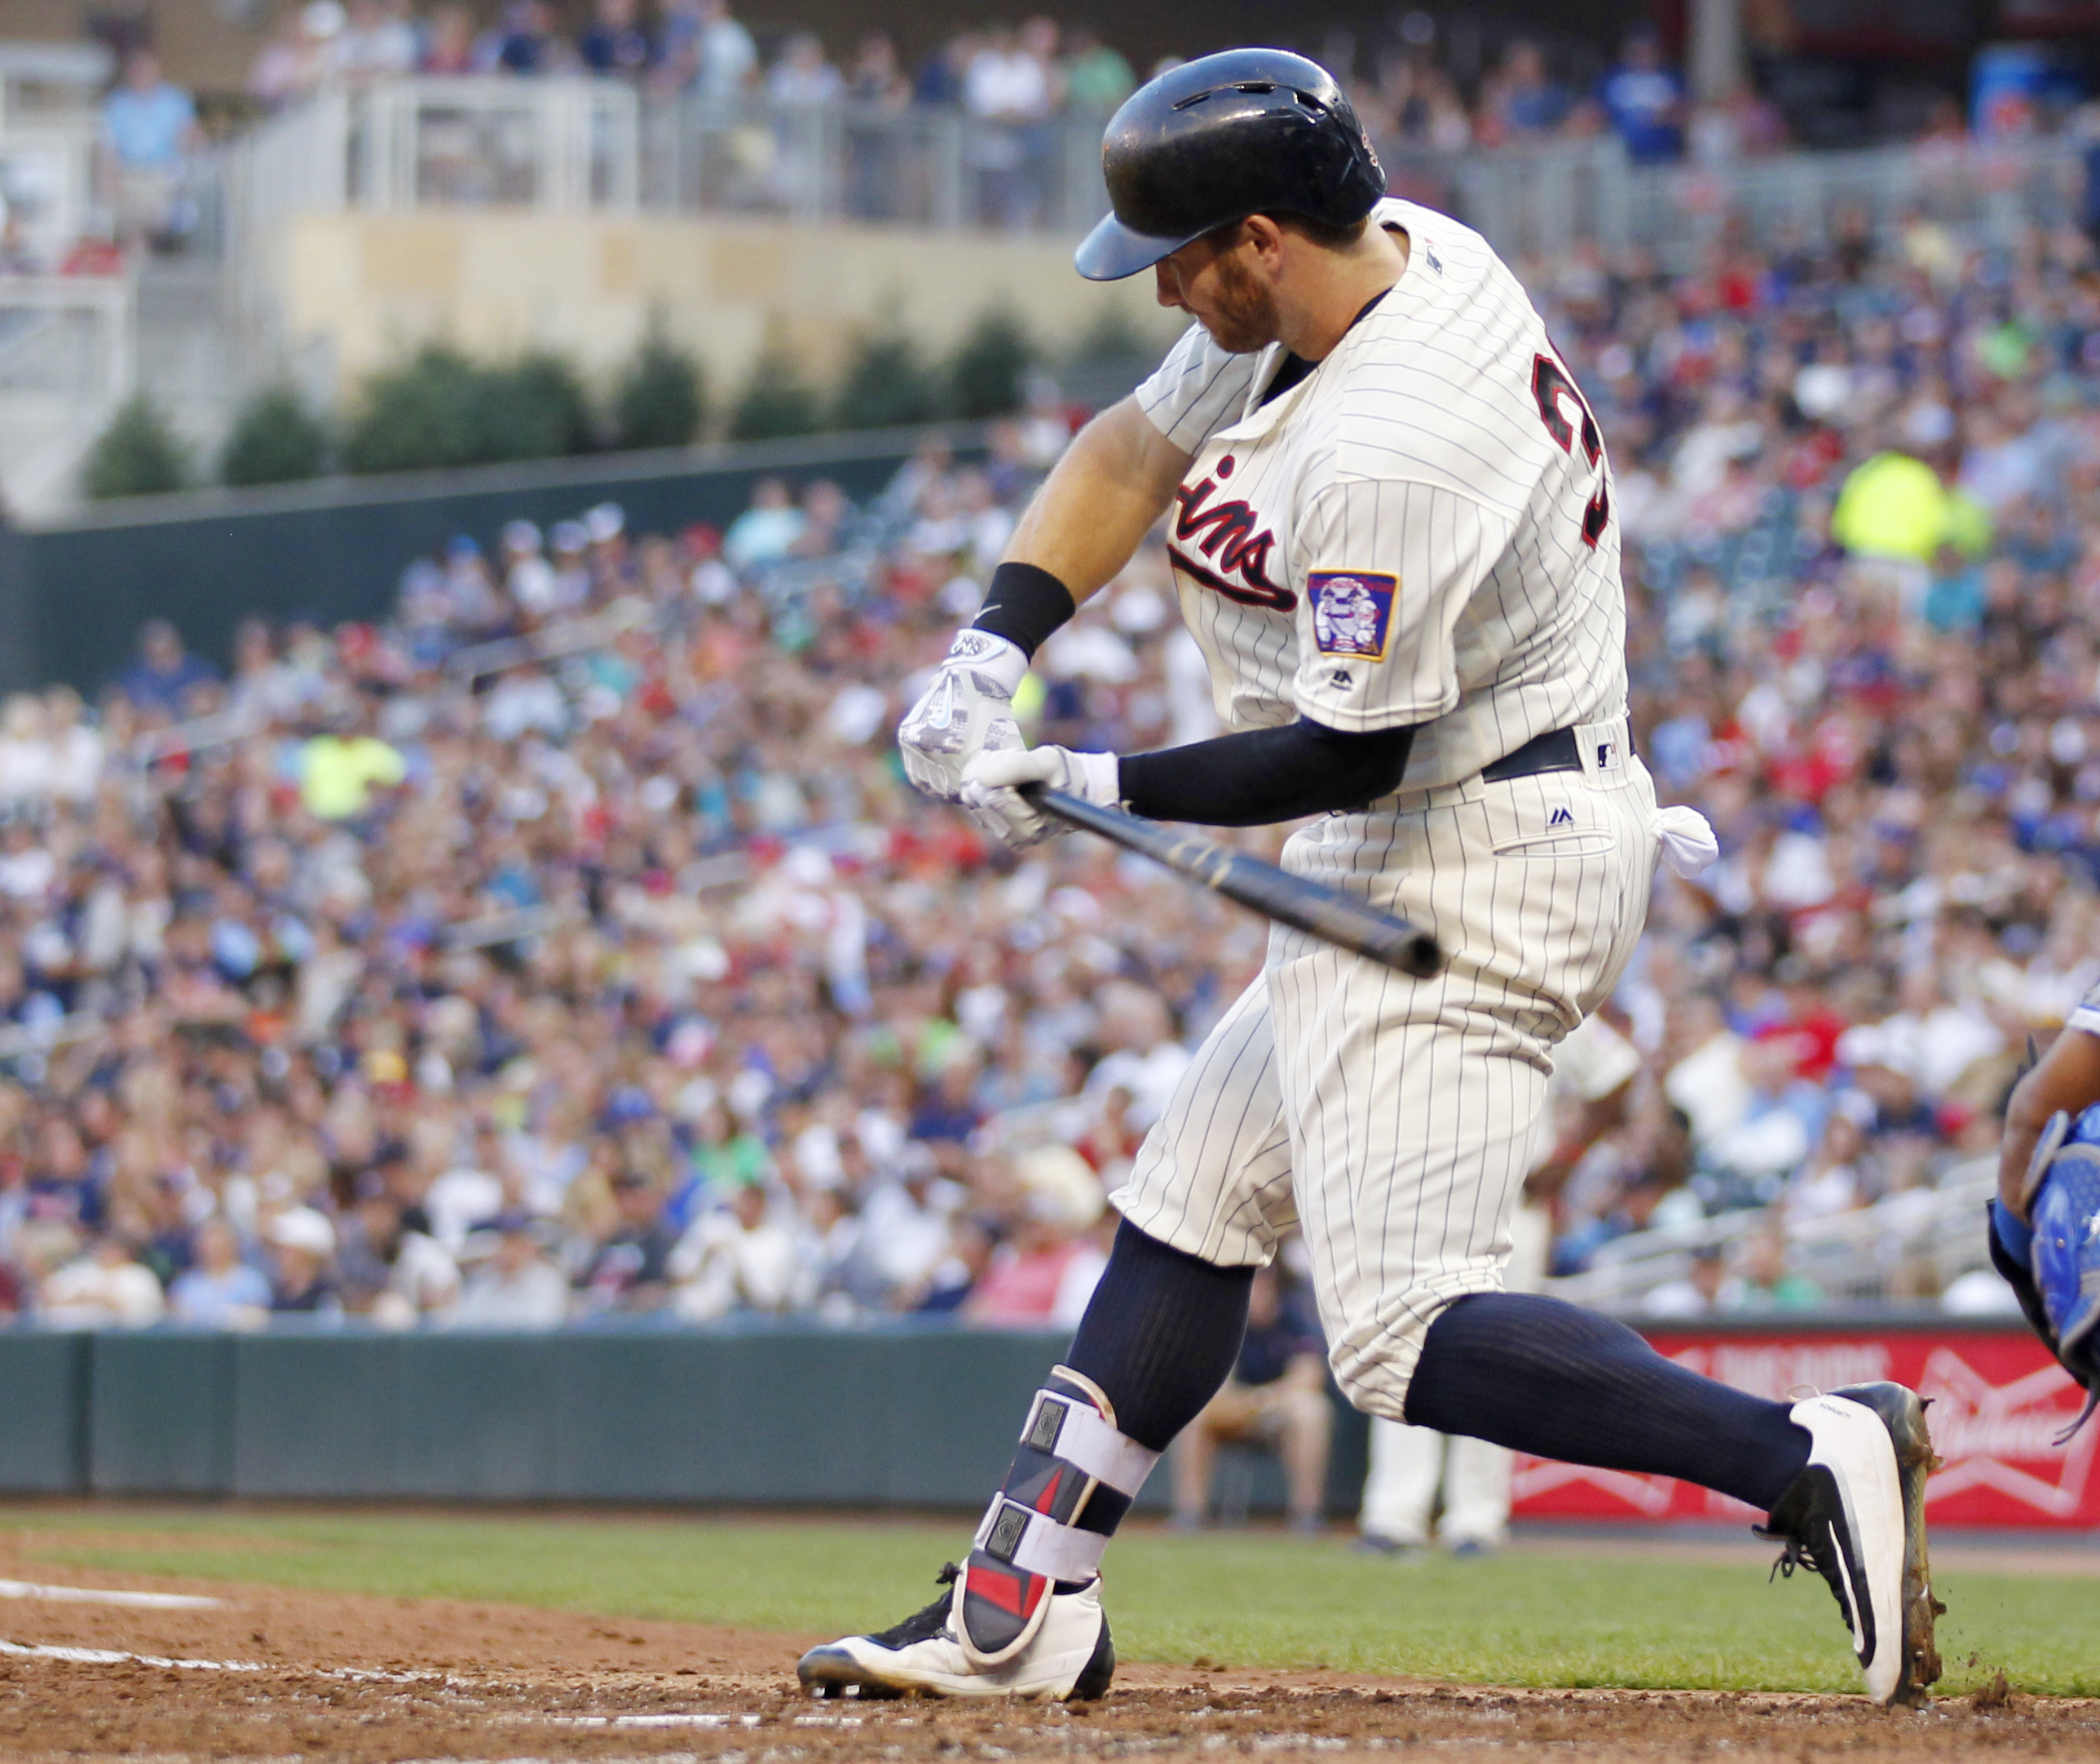 Minnesota Twins' Robbie Grossman swings into a home run against the Kansas City Royals in the fifth inning during a baseball game on Saturday, Aug., 13, 2016, in Minneapolis.(AP Photo/Andy Clayton-King)